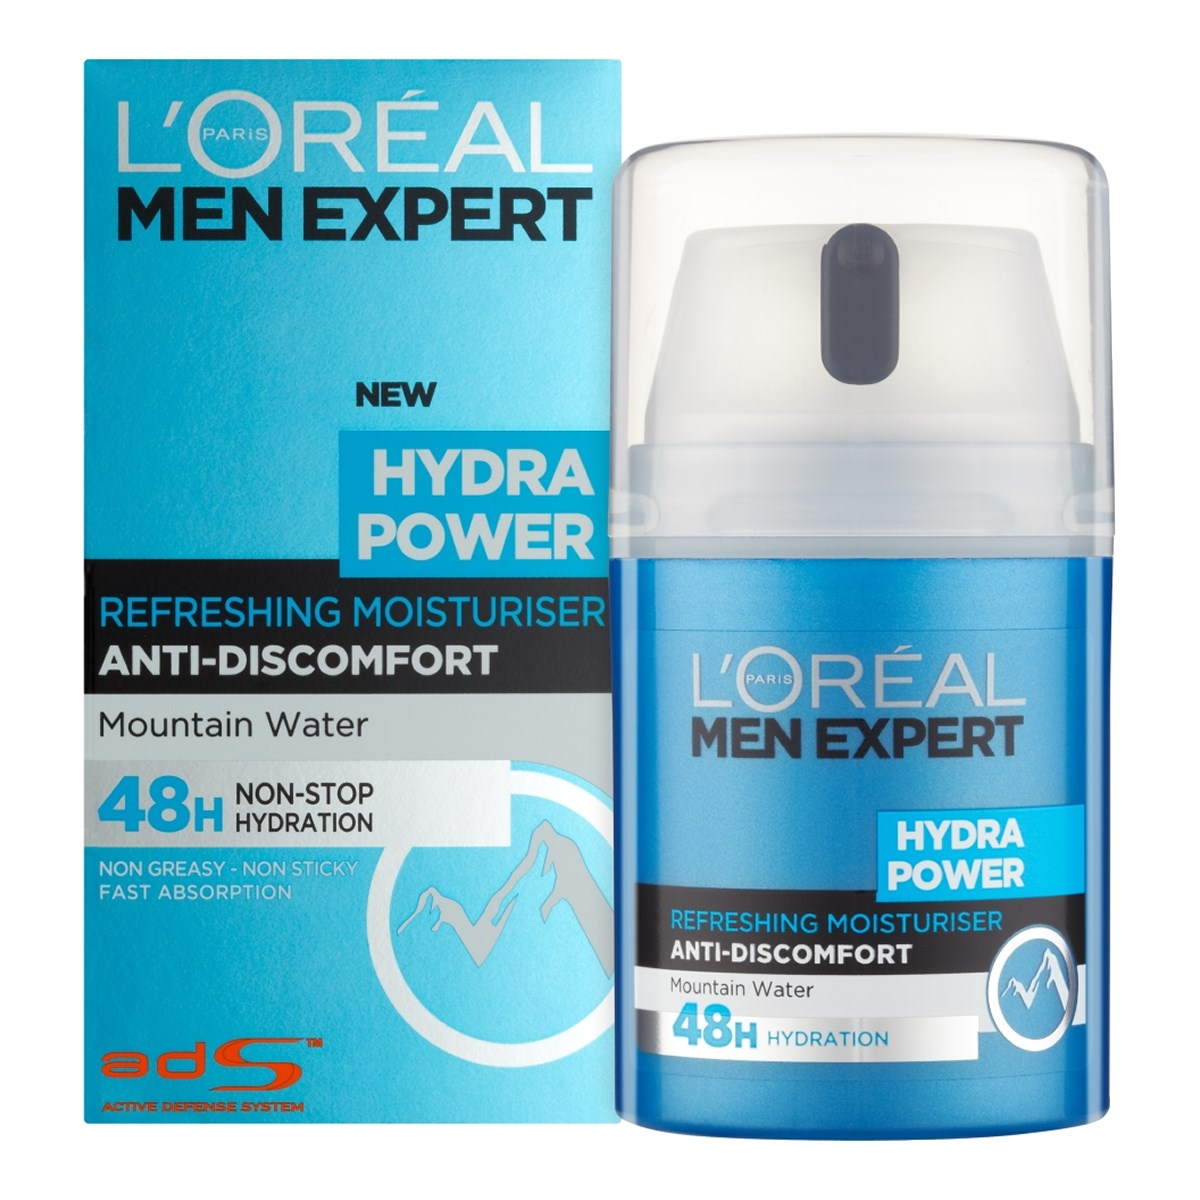 L'Oreal Paris Men Expert Hydra Power Refreshing Moisturiser